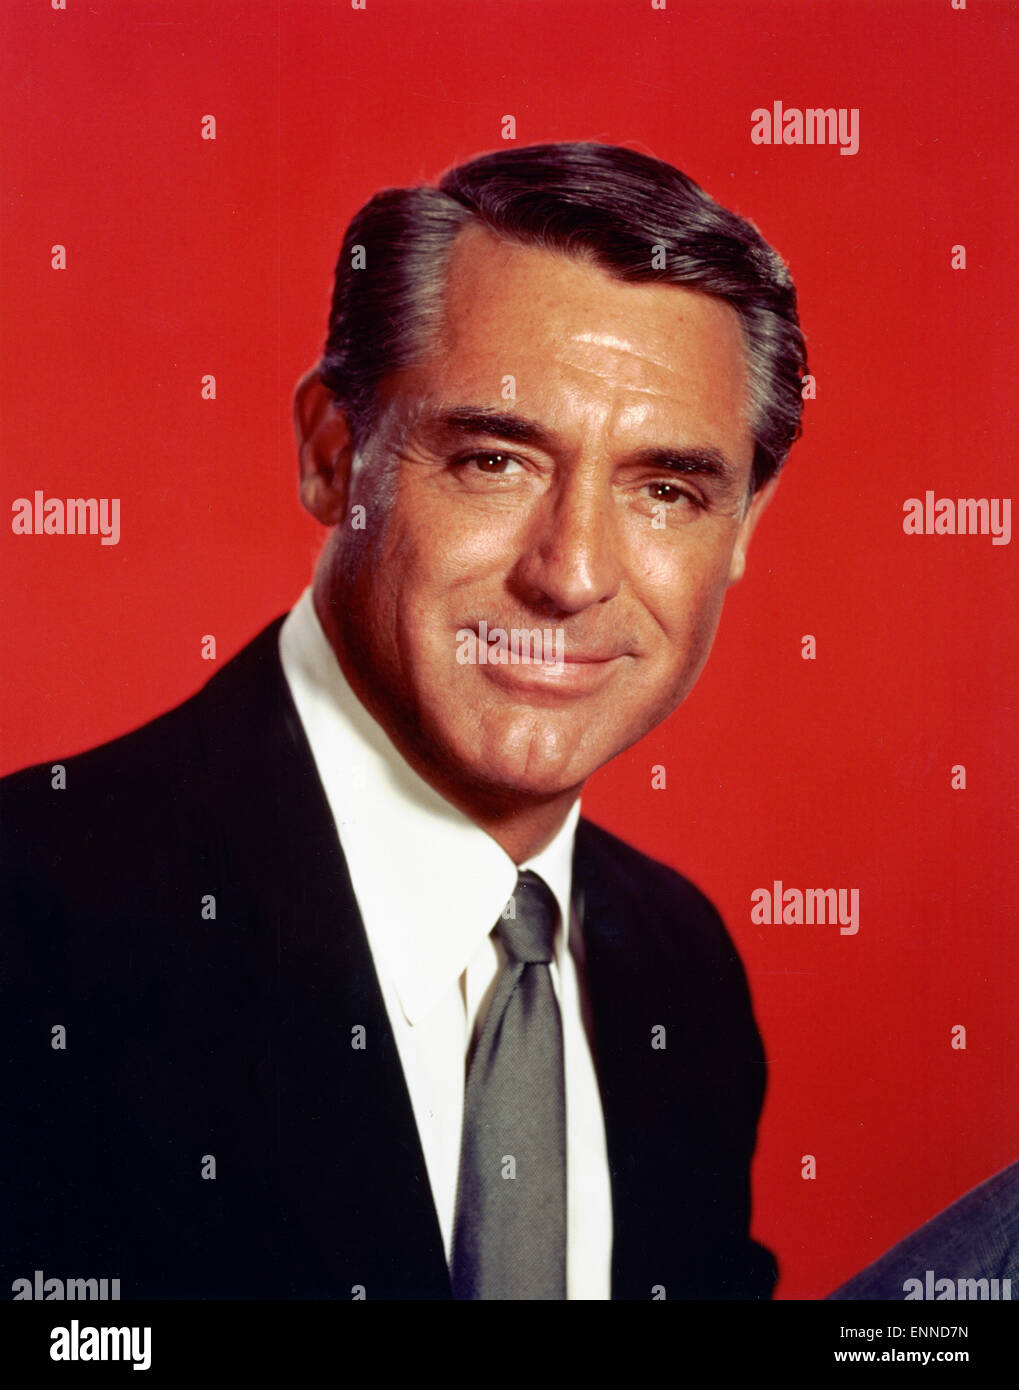 der amerikanische schauspieler cary grant ca ende 1950er jahre stock photo royalty free image. Black Bedroom Furniture Sets. Home Design Ideas